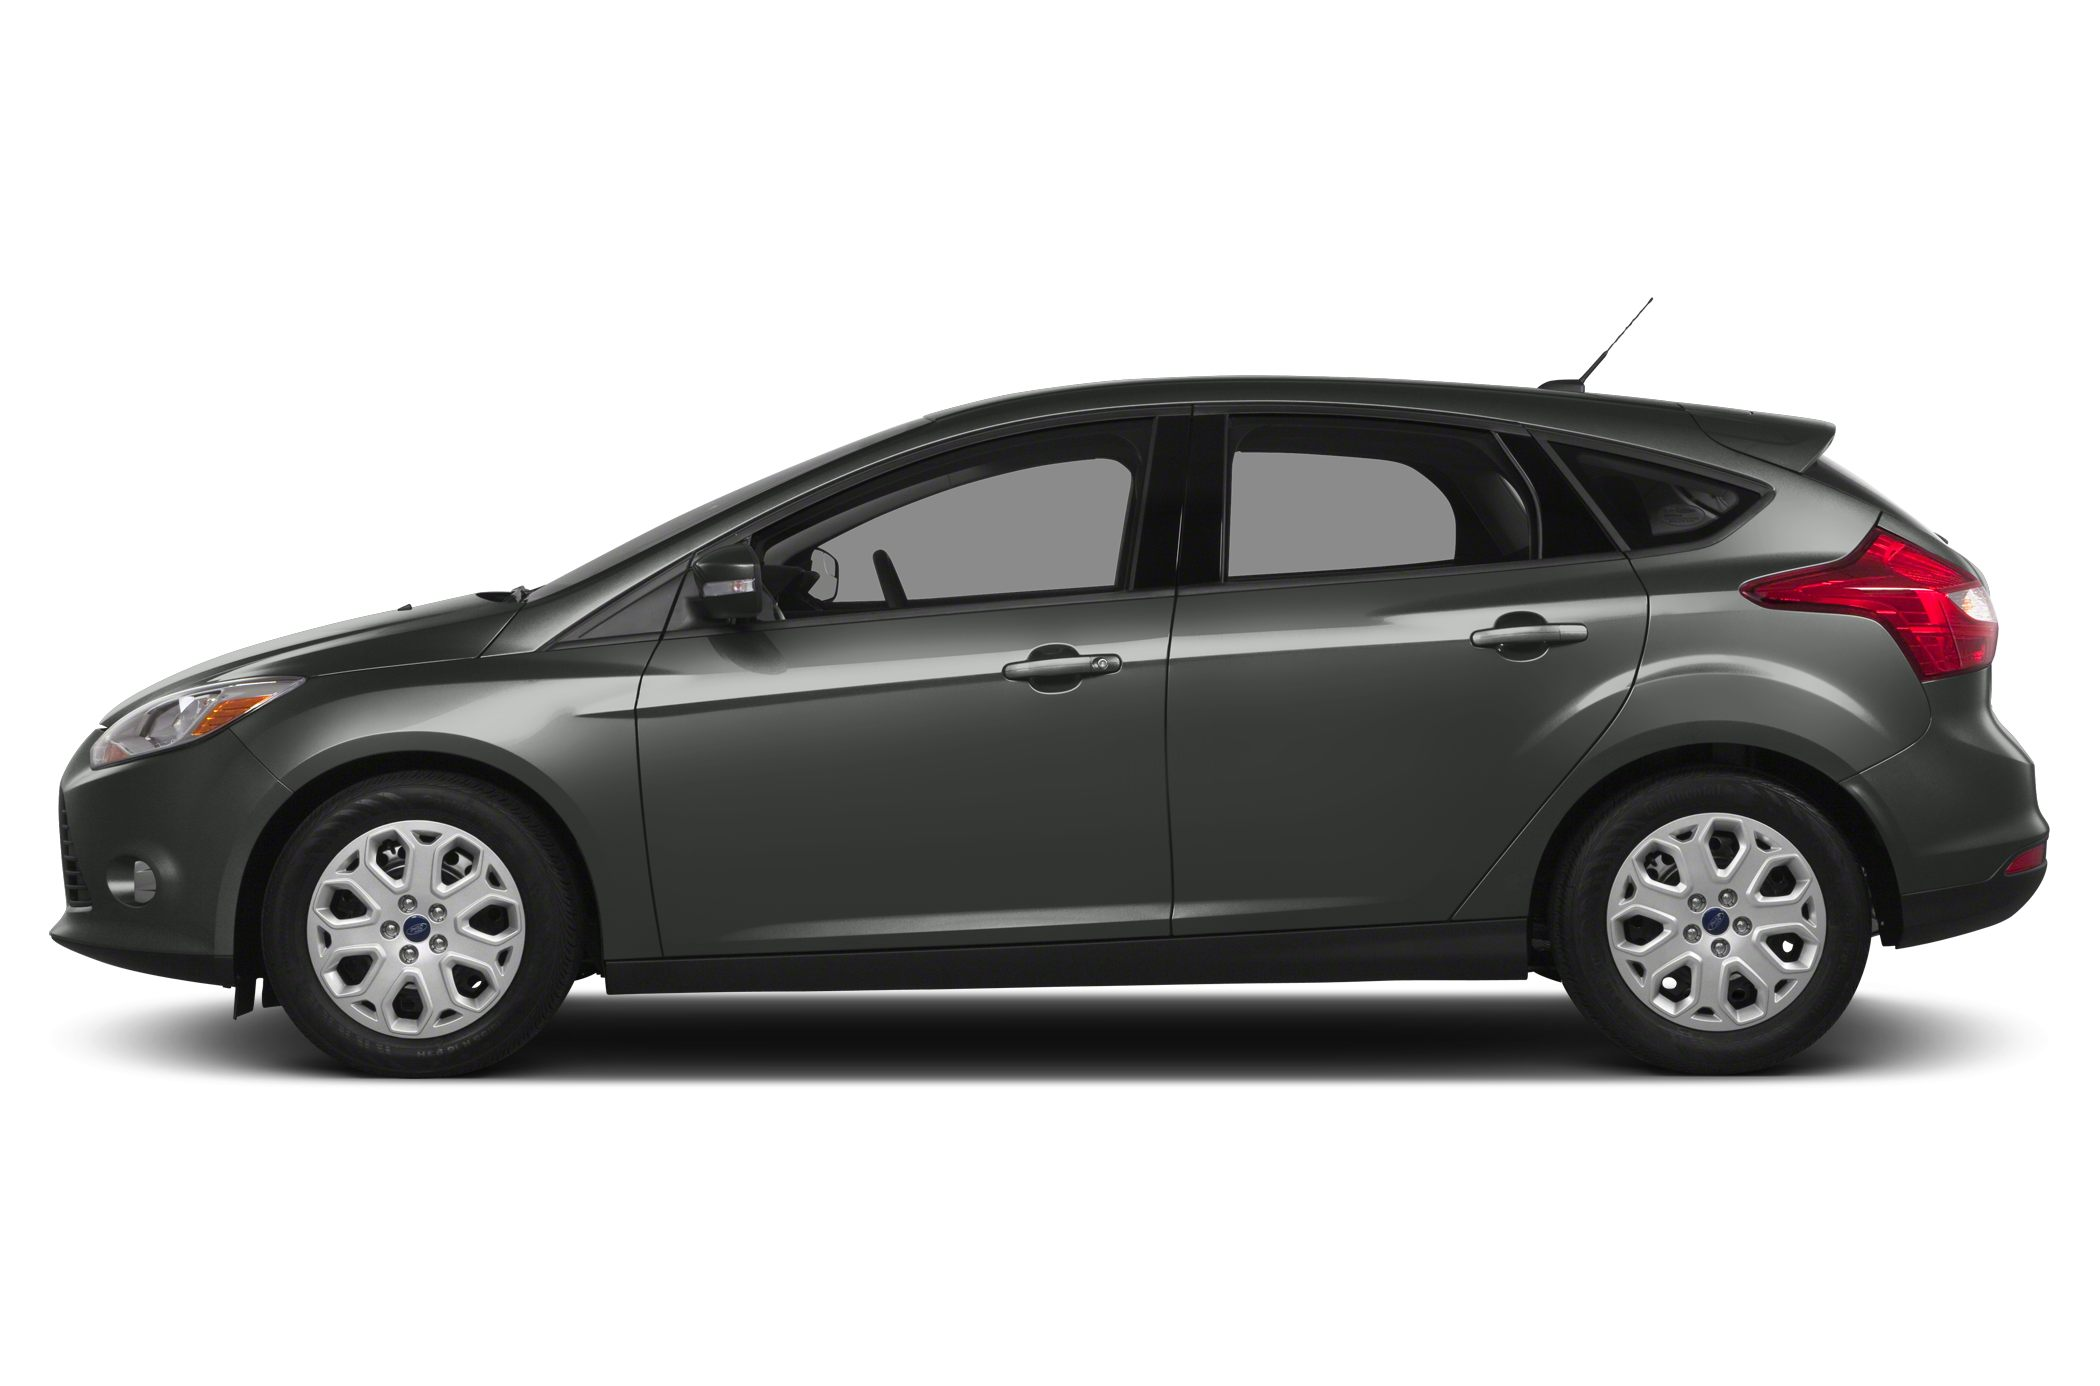 Used 2014 Ford Focus SE Inventory Vehicle Details at Bruce Titus